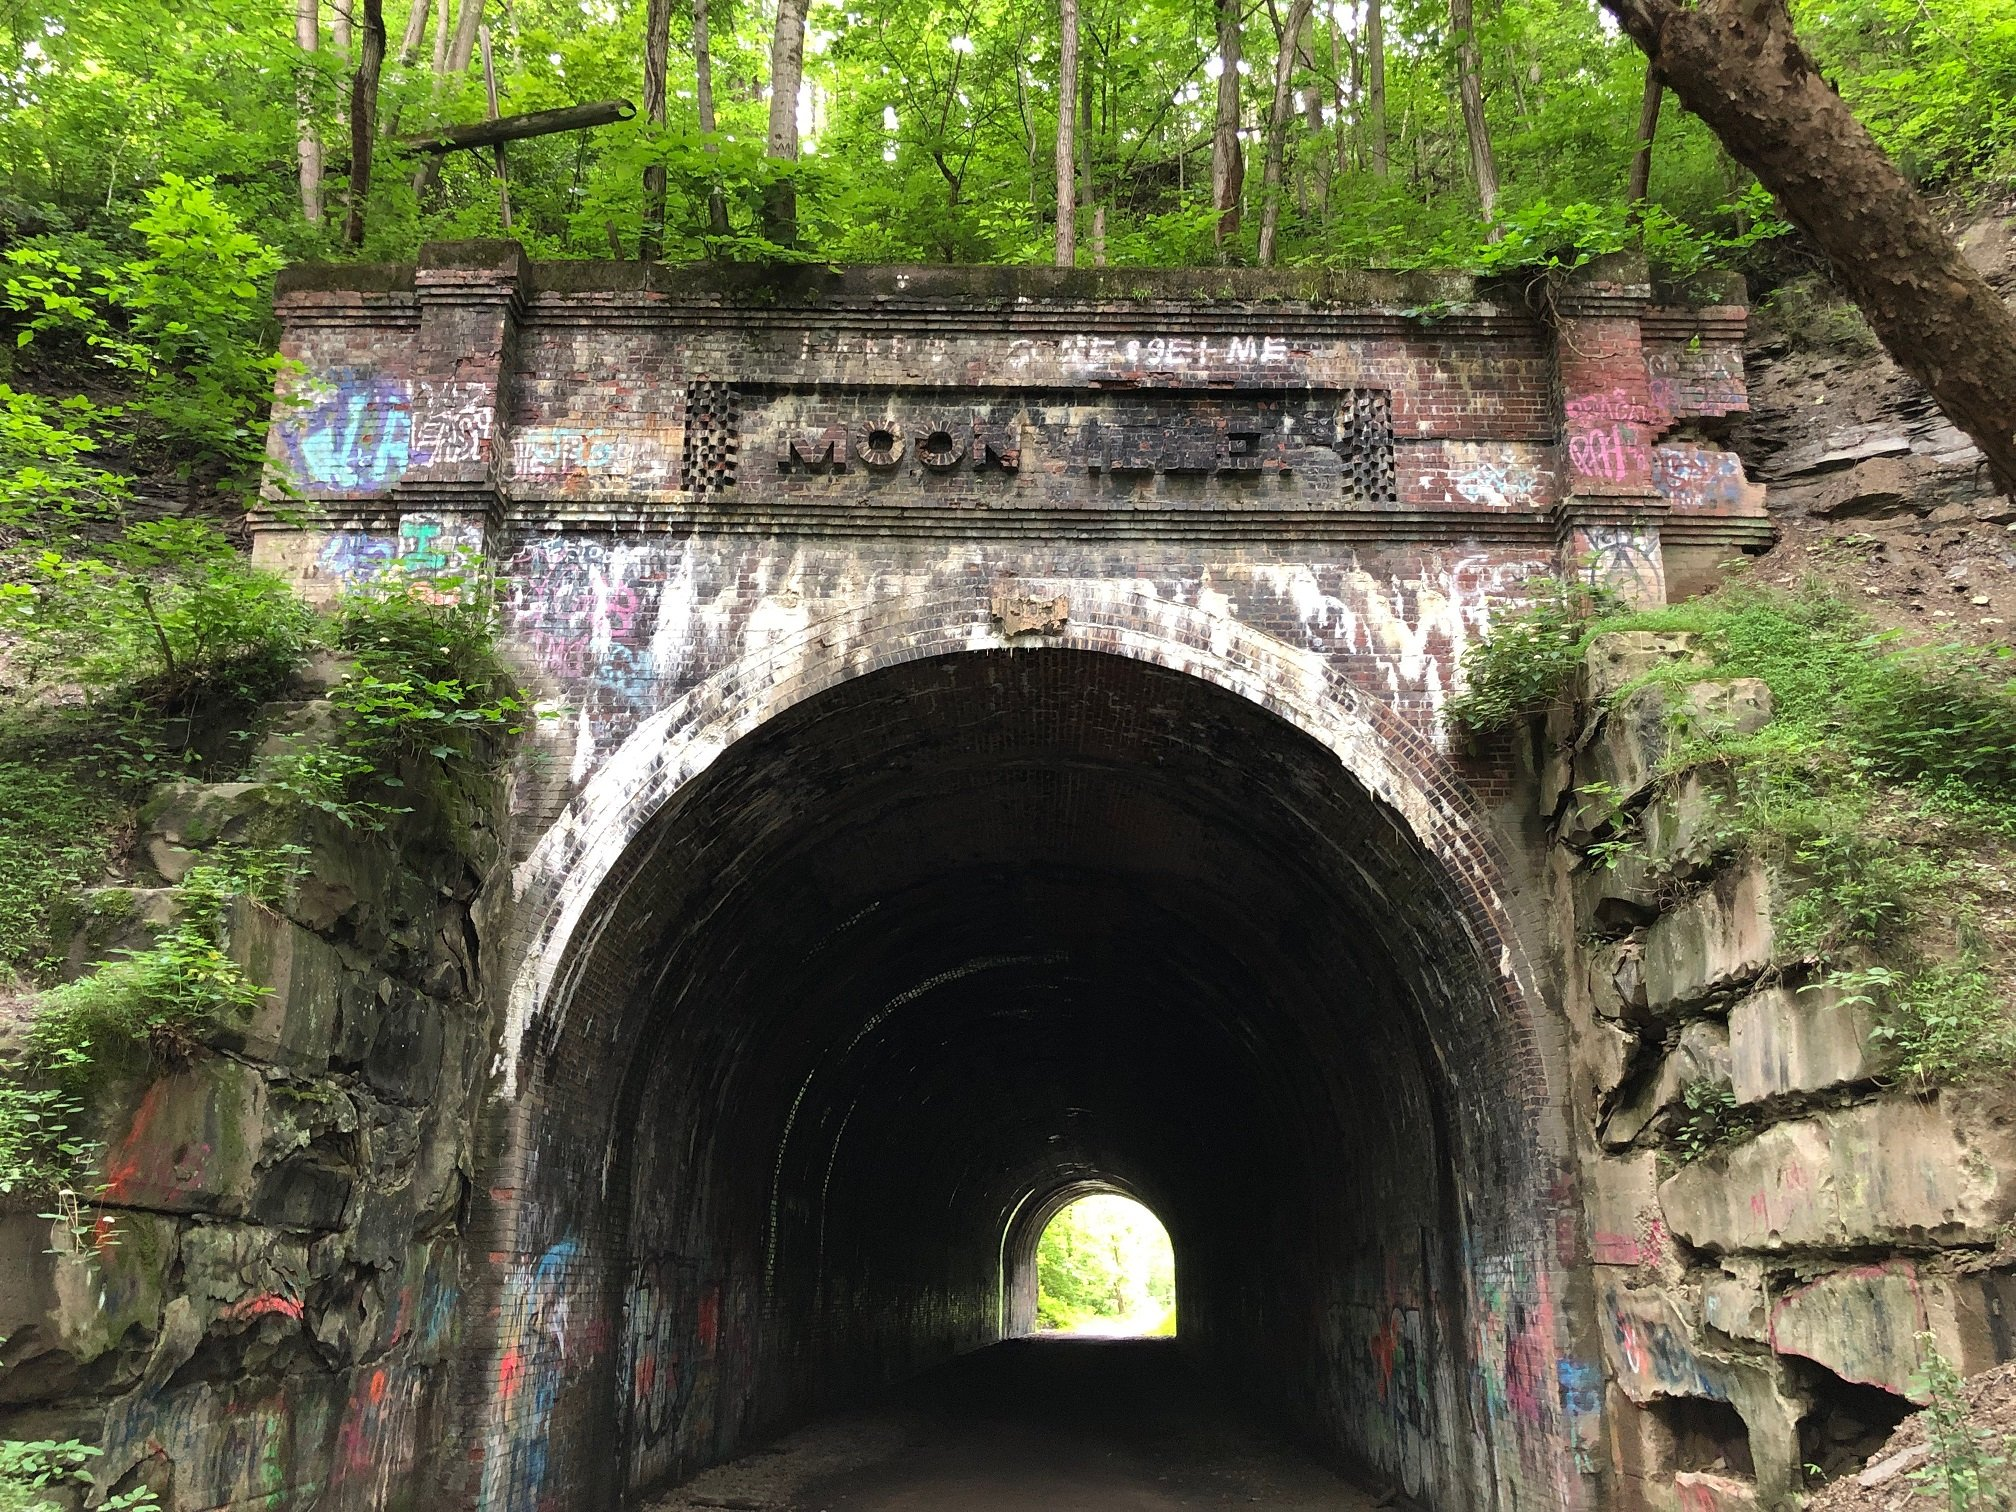 Eastern portal of the Moonville Tunnel. June 22, 2019.